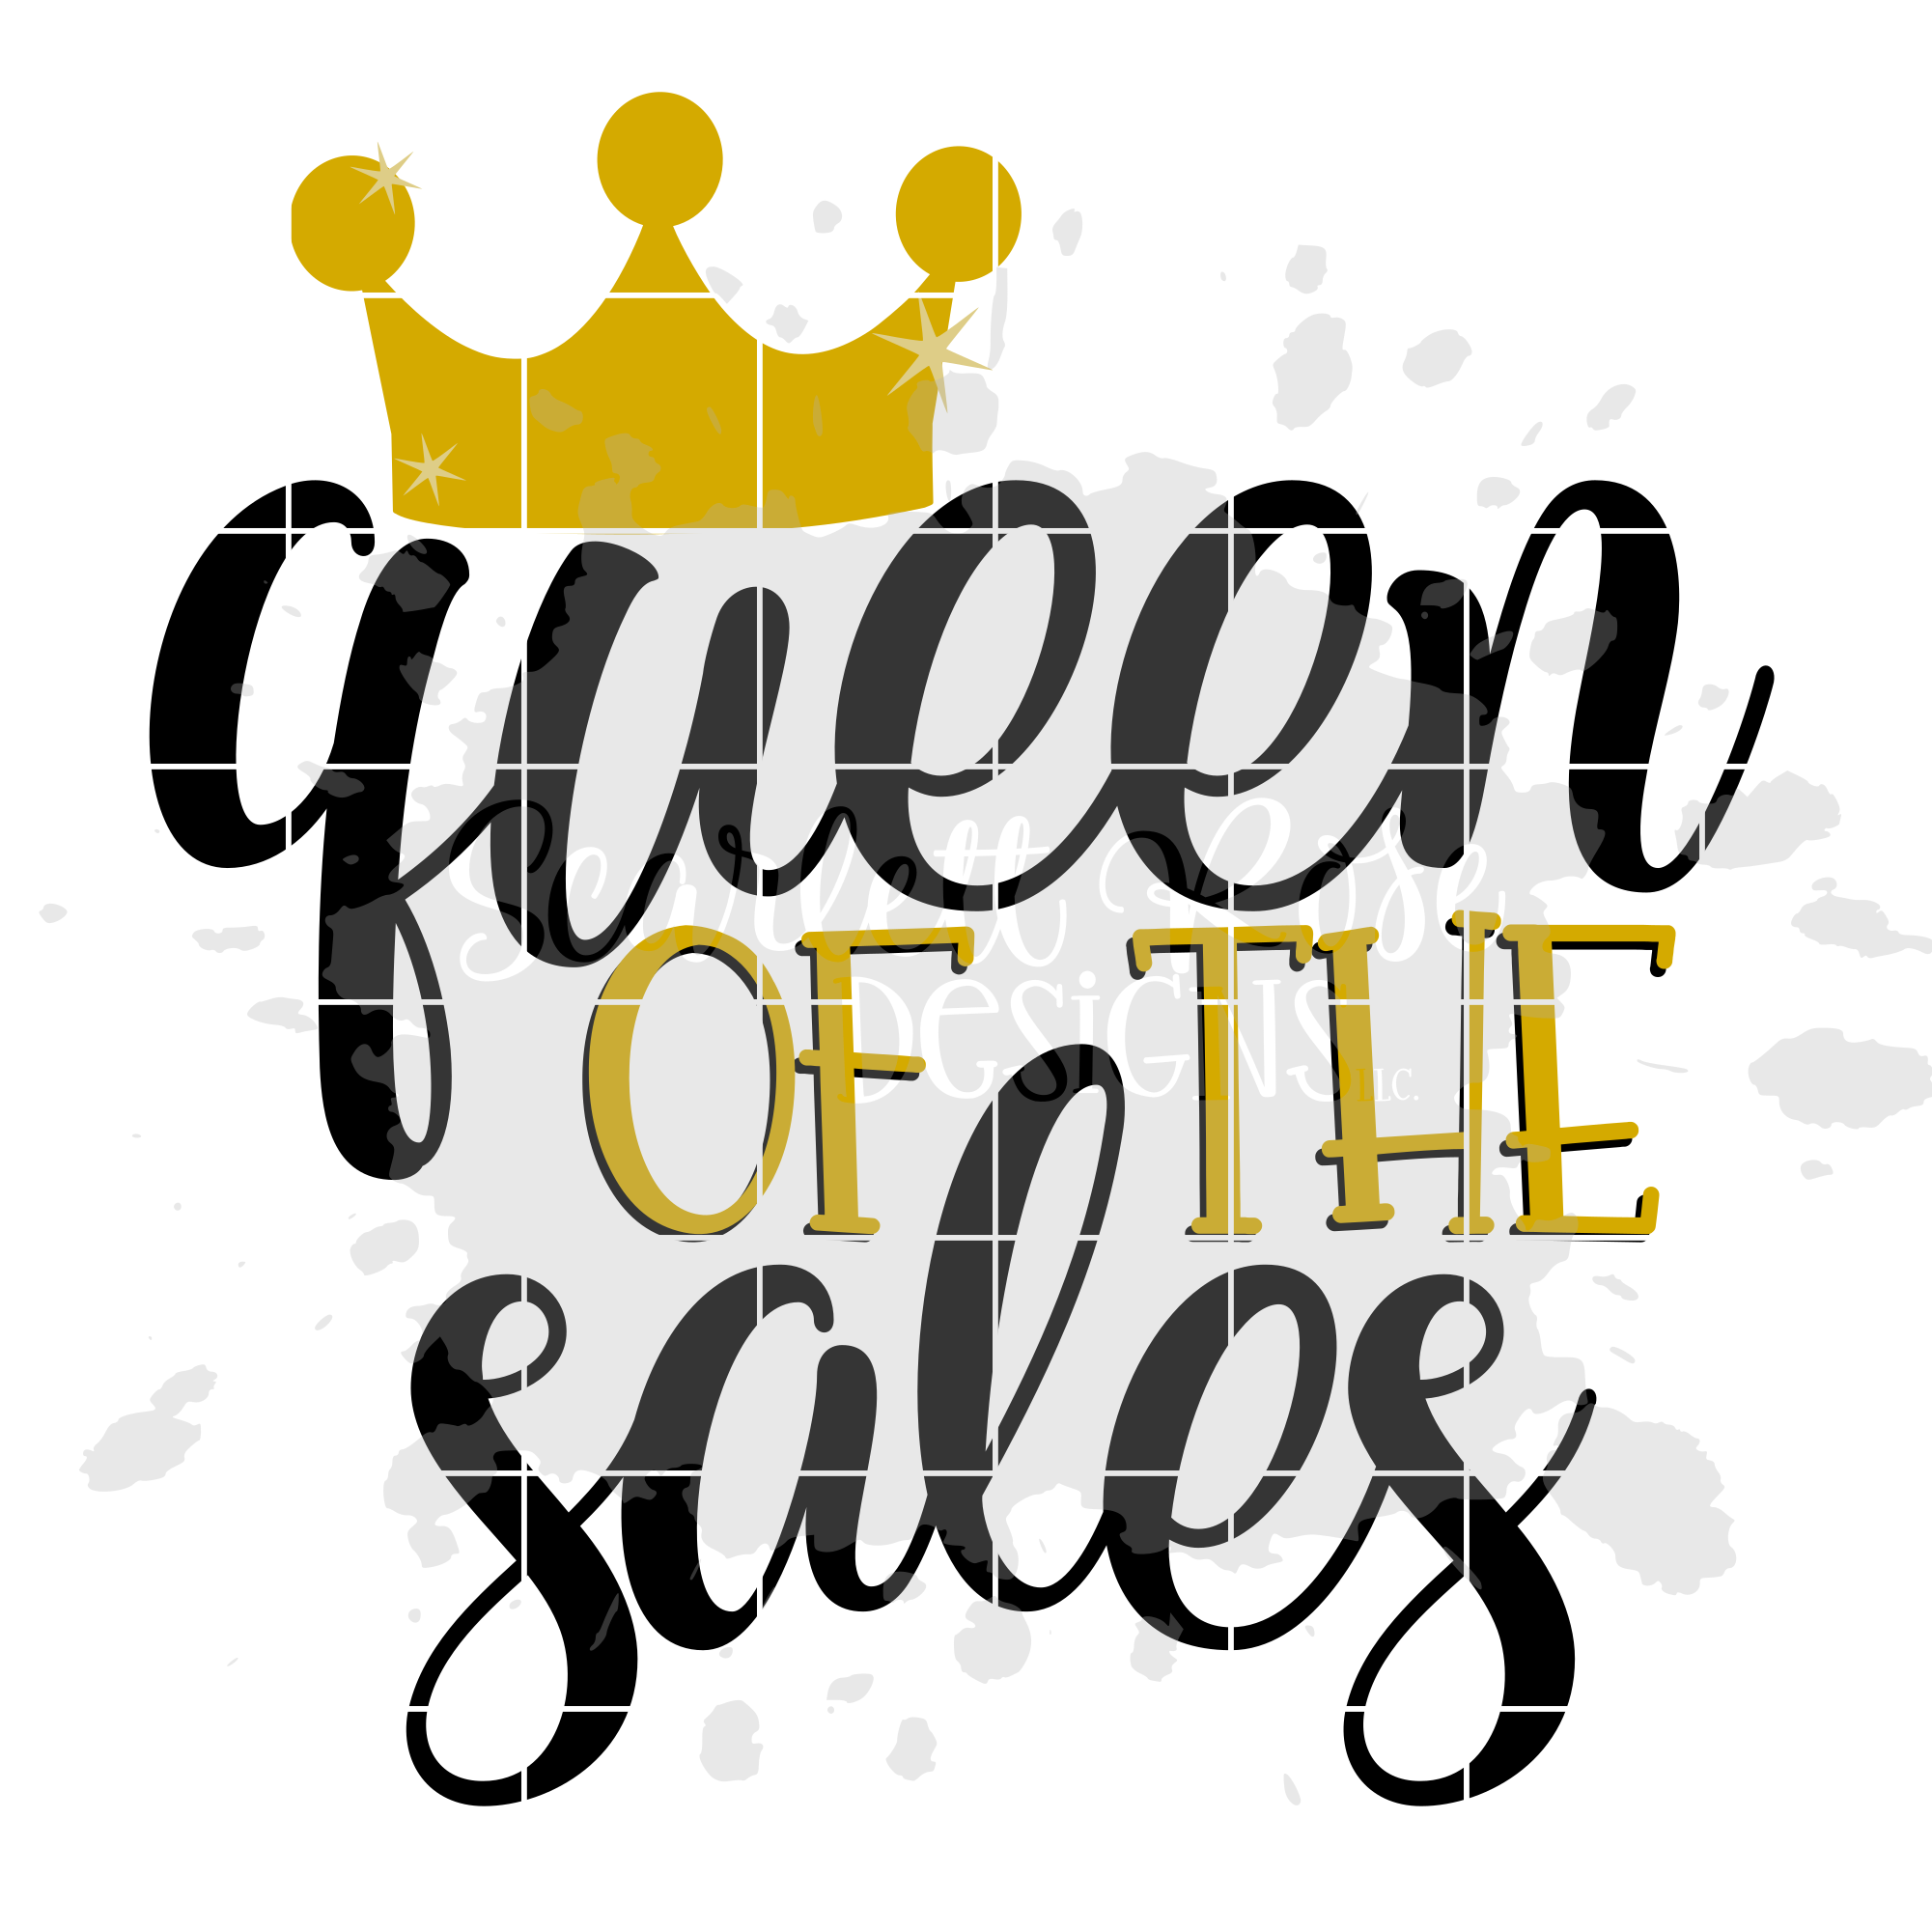 Queen of the Sales SVG - Black Friday SVG example image 2